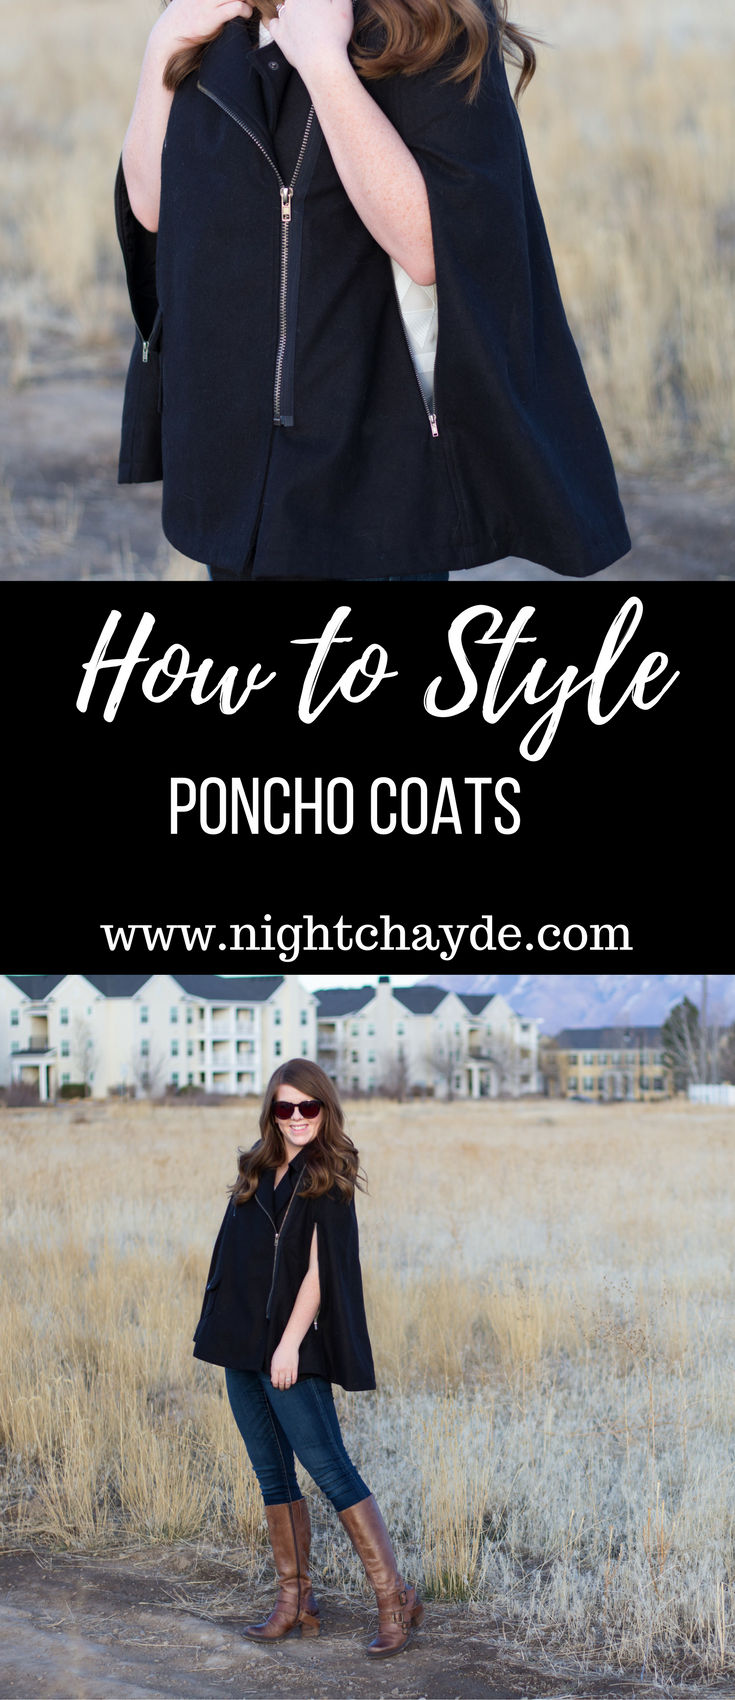 How to Style Poncho Coats